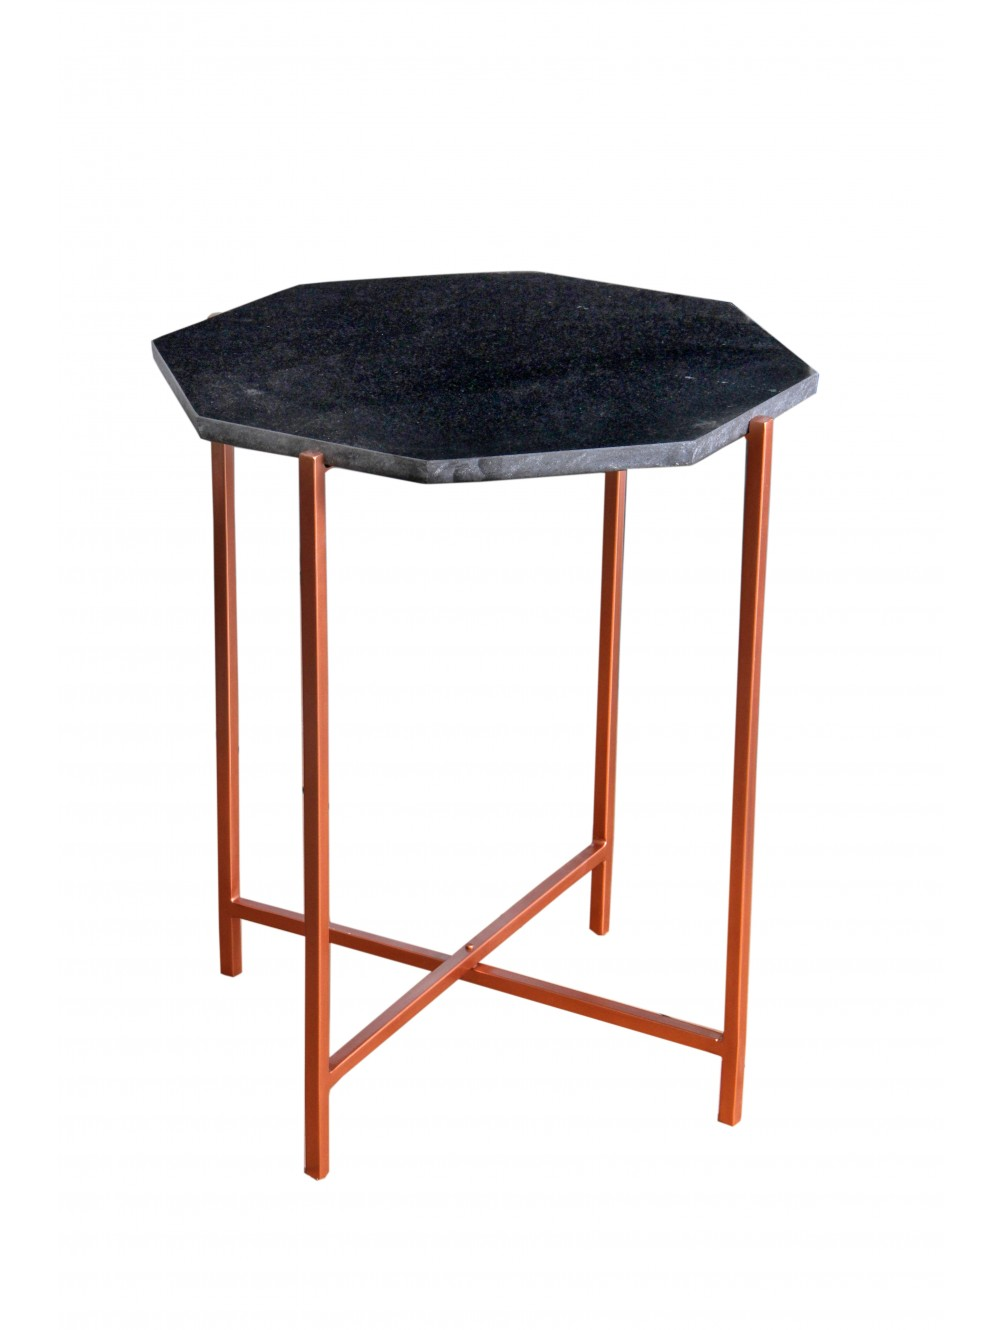 designer love copper table mario side hexagon zebi accent hexag lulu home furnishings edmonton chairs for living room slim lamp gloss wooden cooler hobby lobby console end